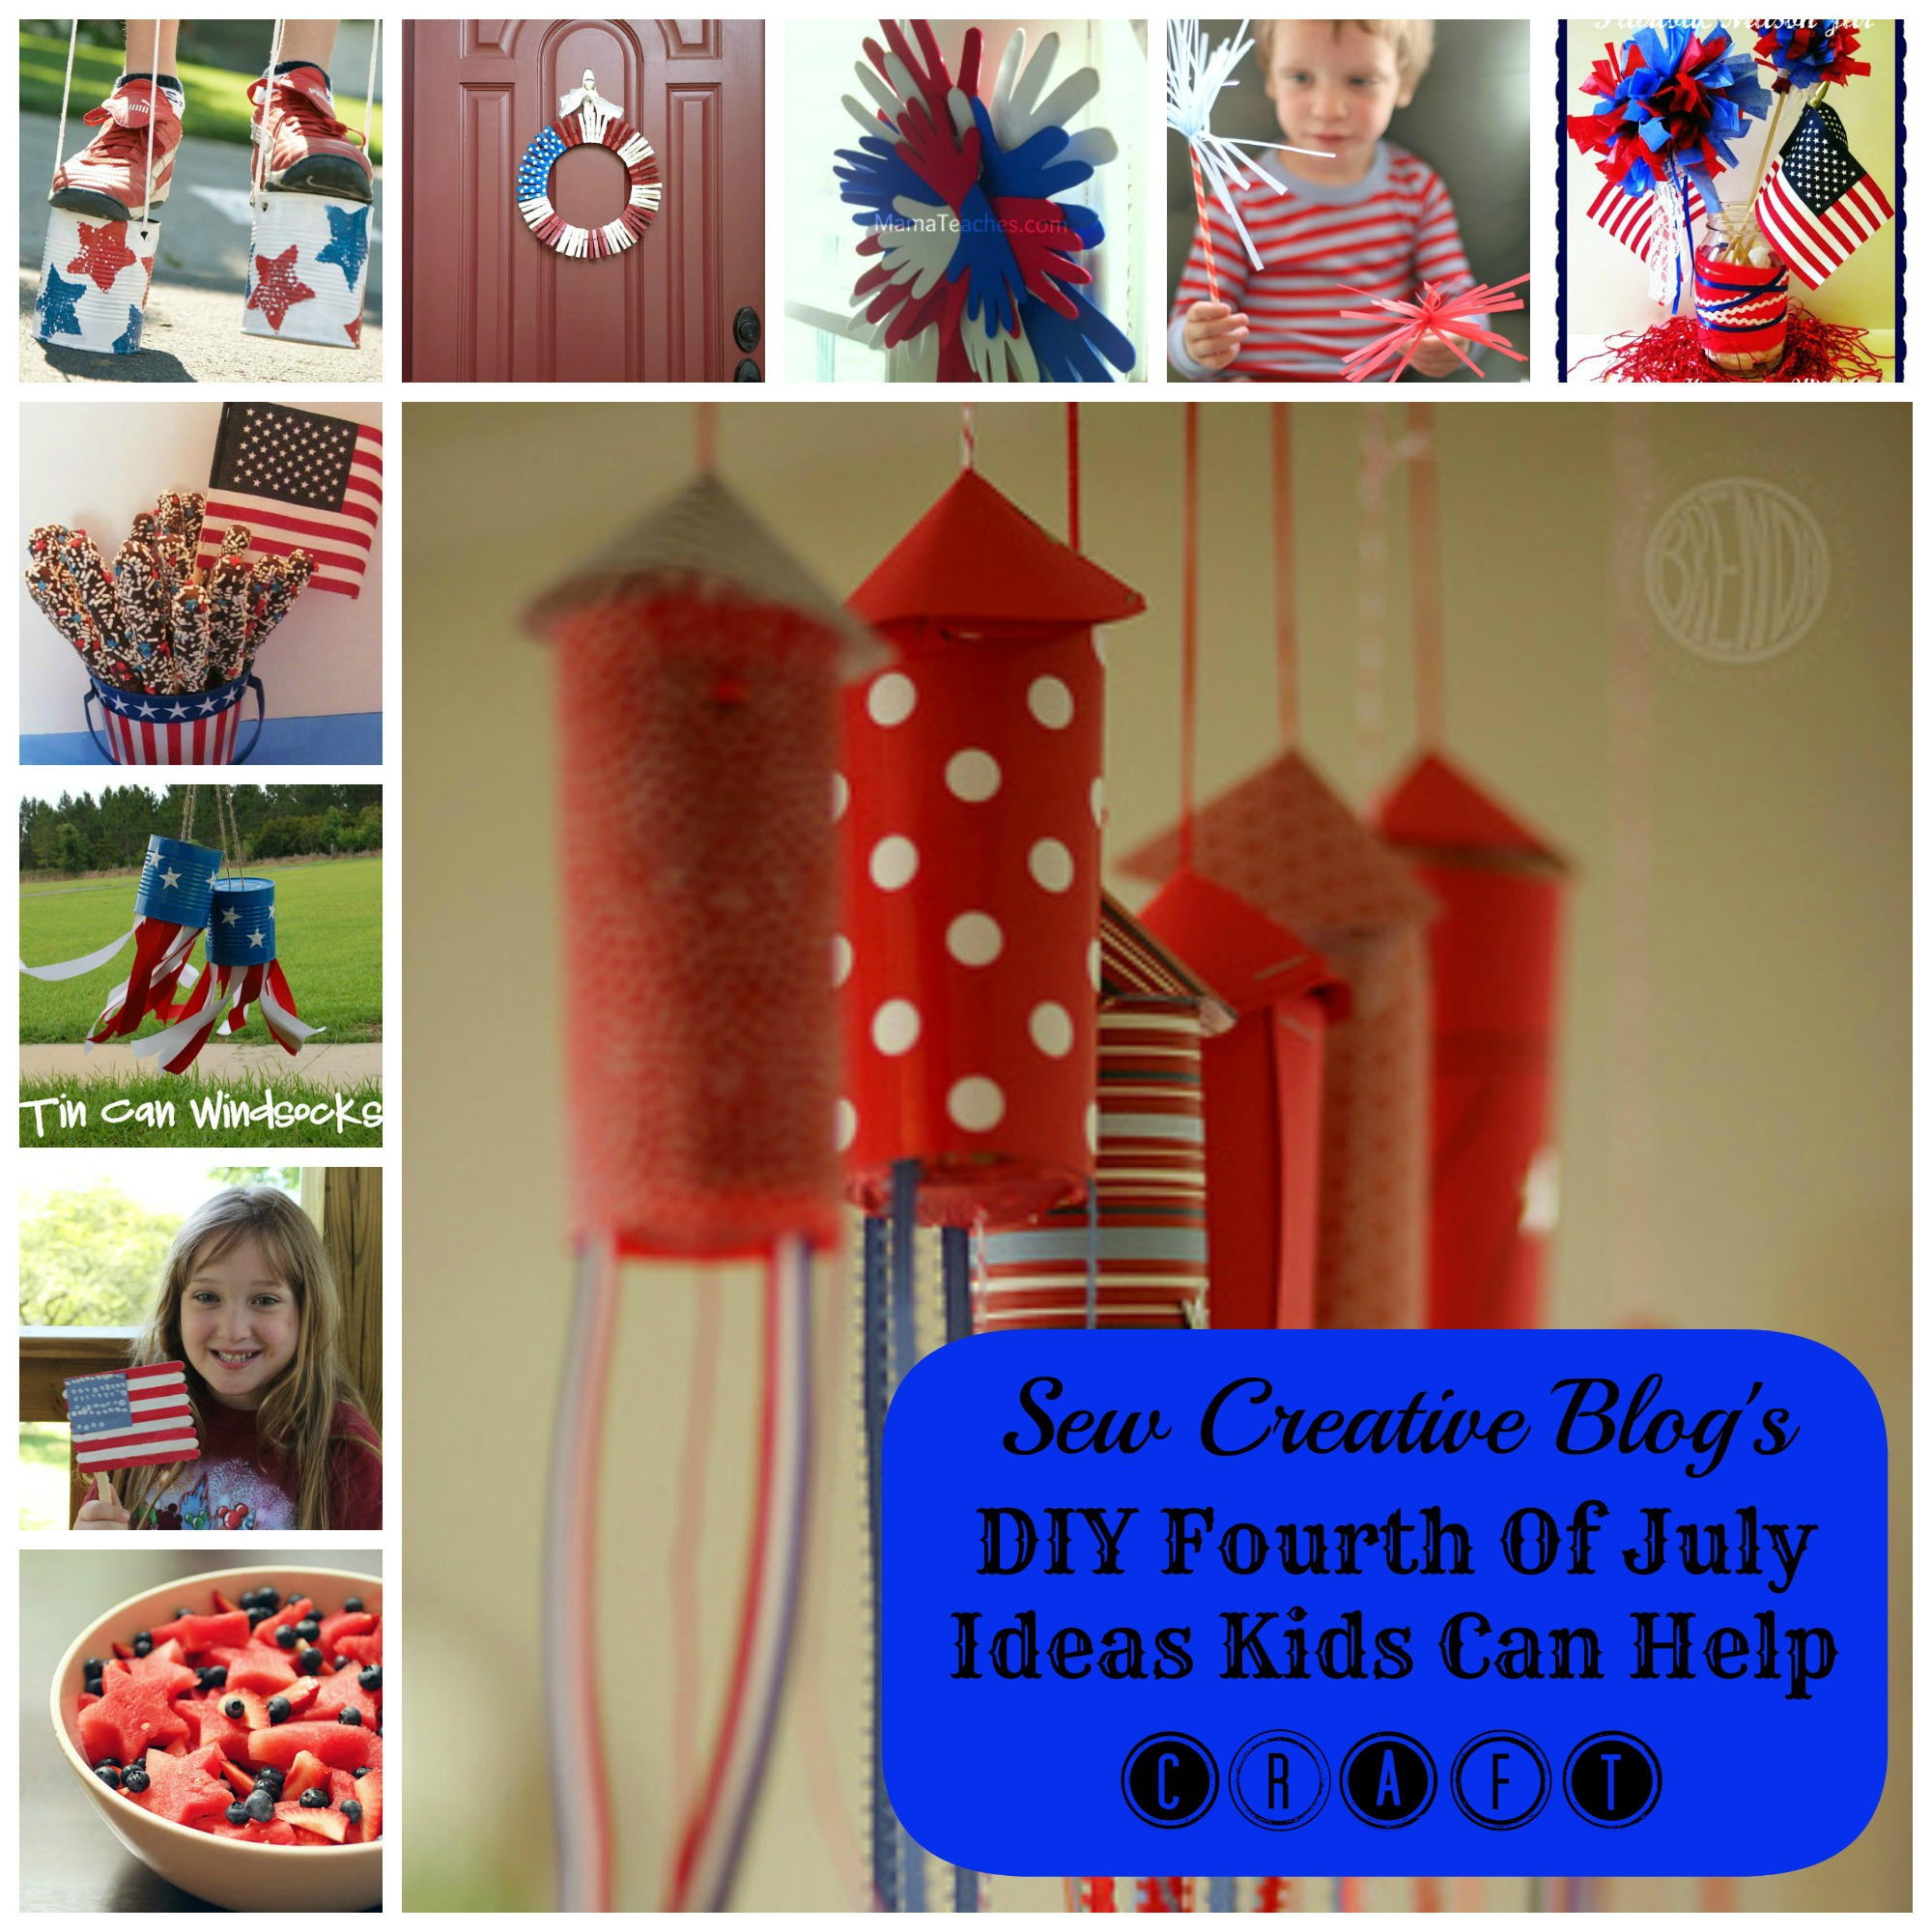 Inspiration Diy Fourth Of July Ideas Kids Can Help Craft